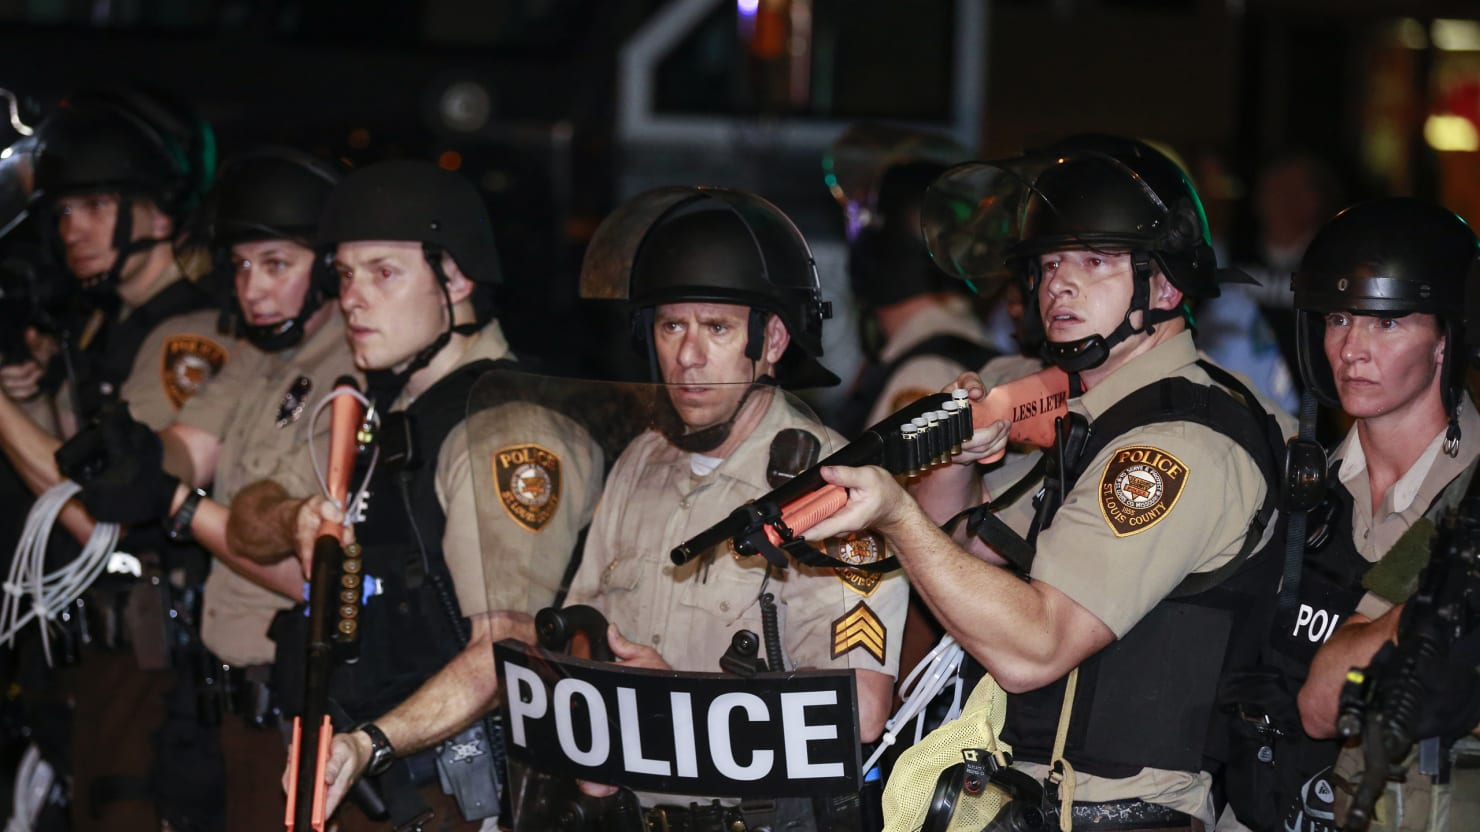 Is America a Police State? For Many, Yes